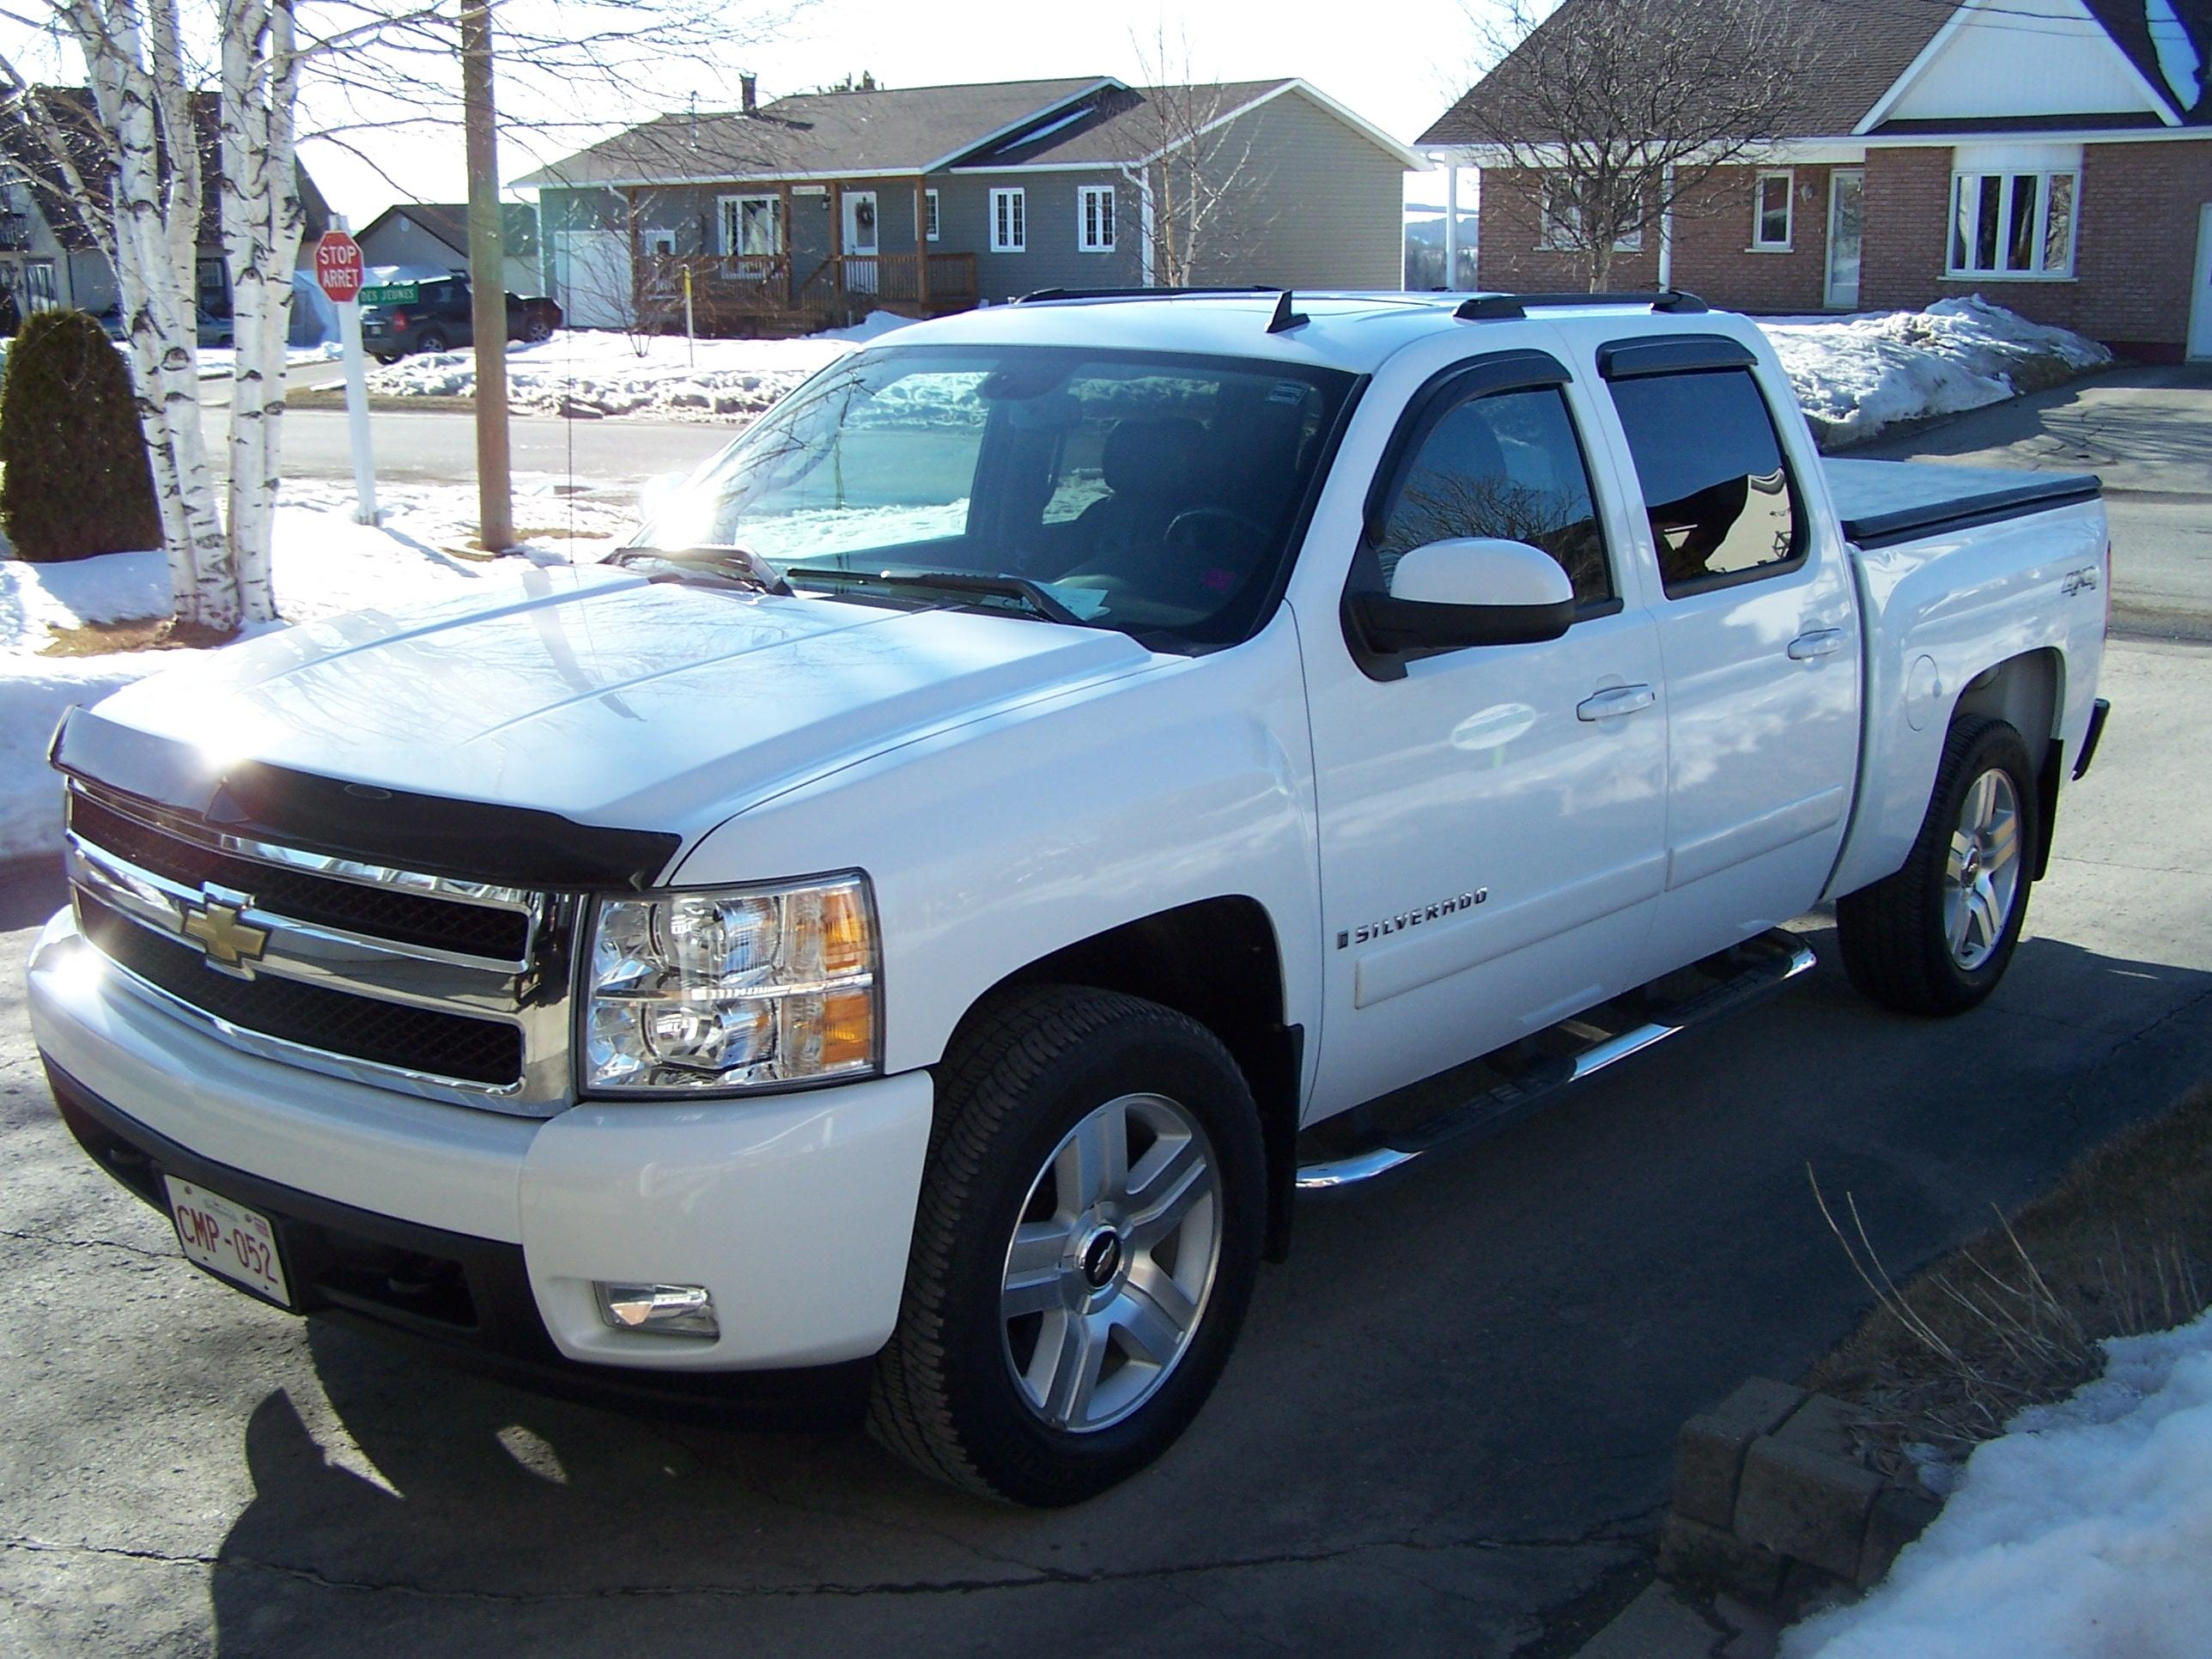 nokia323 2007 chevrolet silverado 1500 crew cab specs. Black Bedroom Furniture Sets. Home Design Ideas